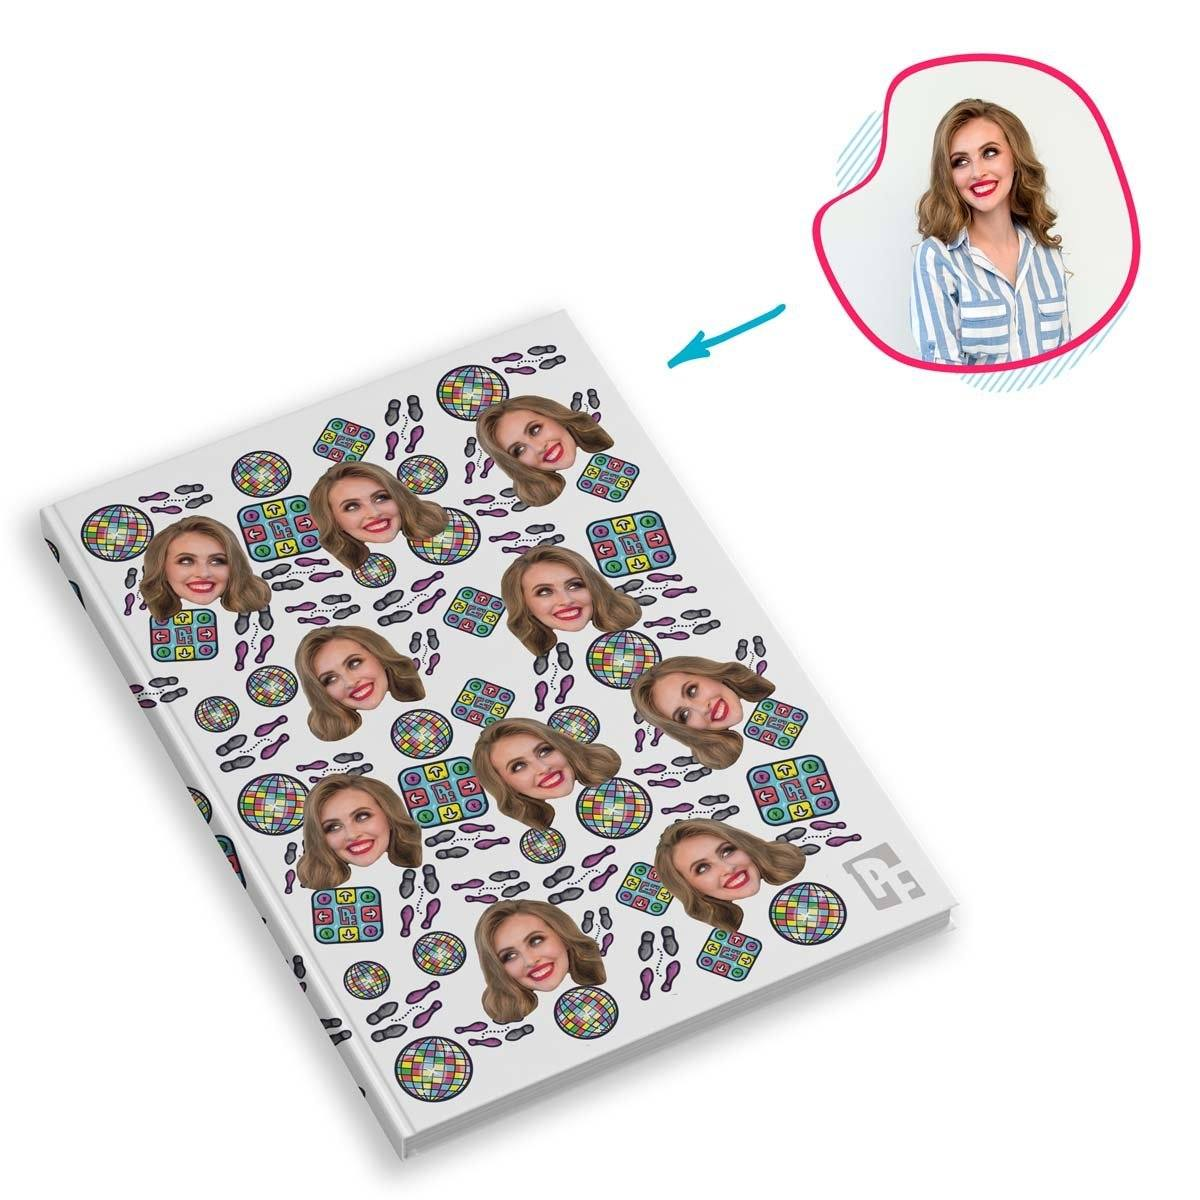 white Dancing Notebook personalized with photo of face printed on them